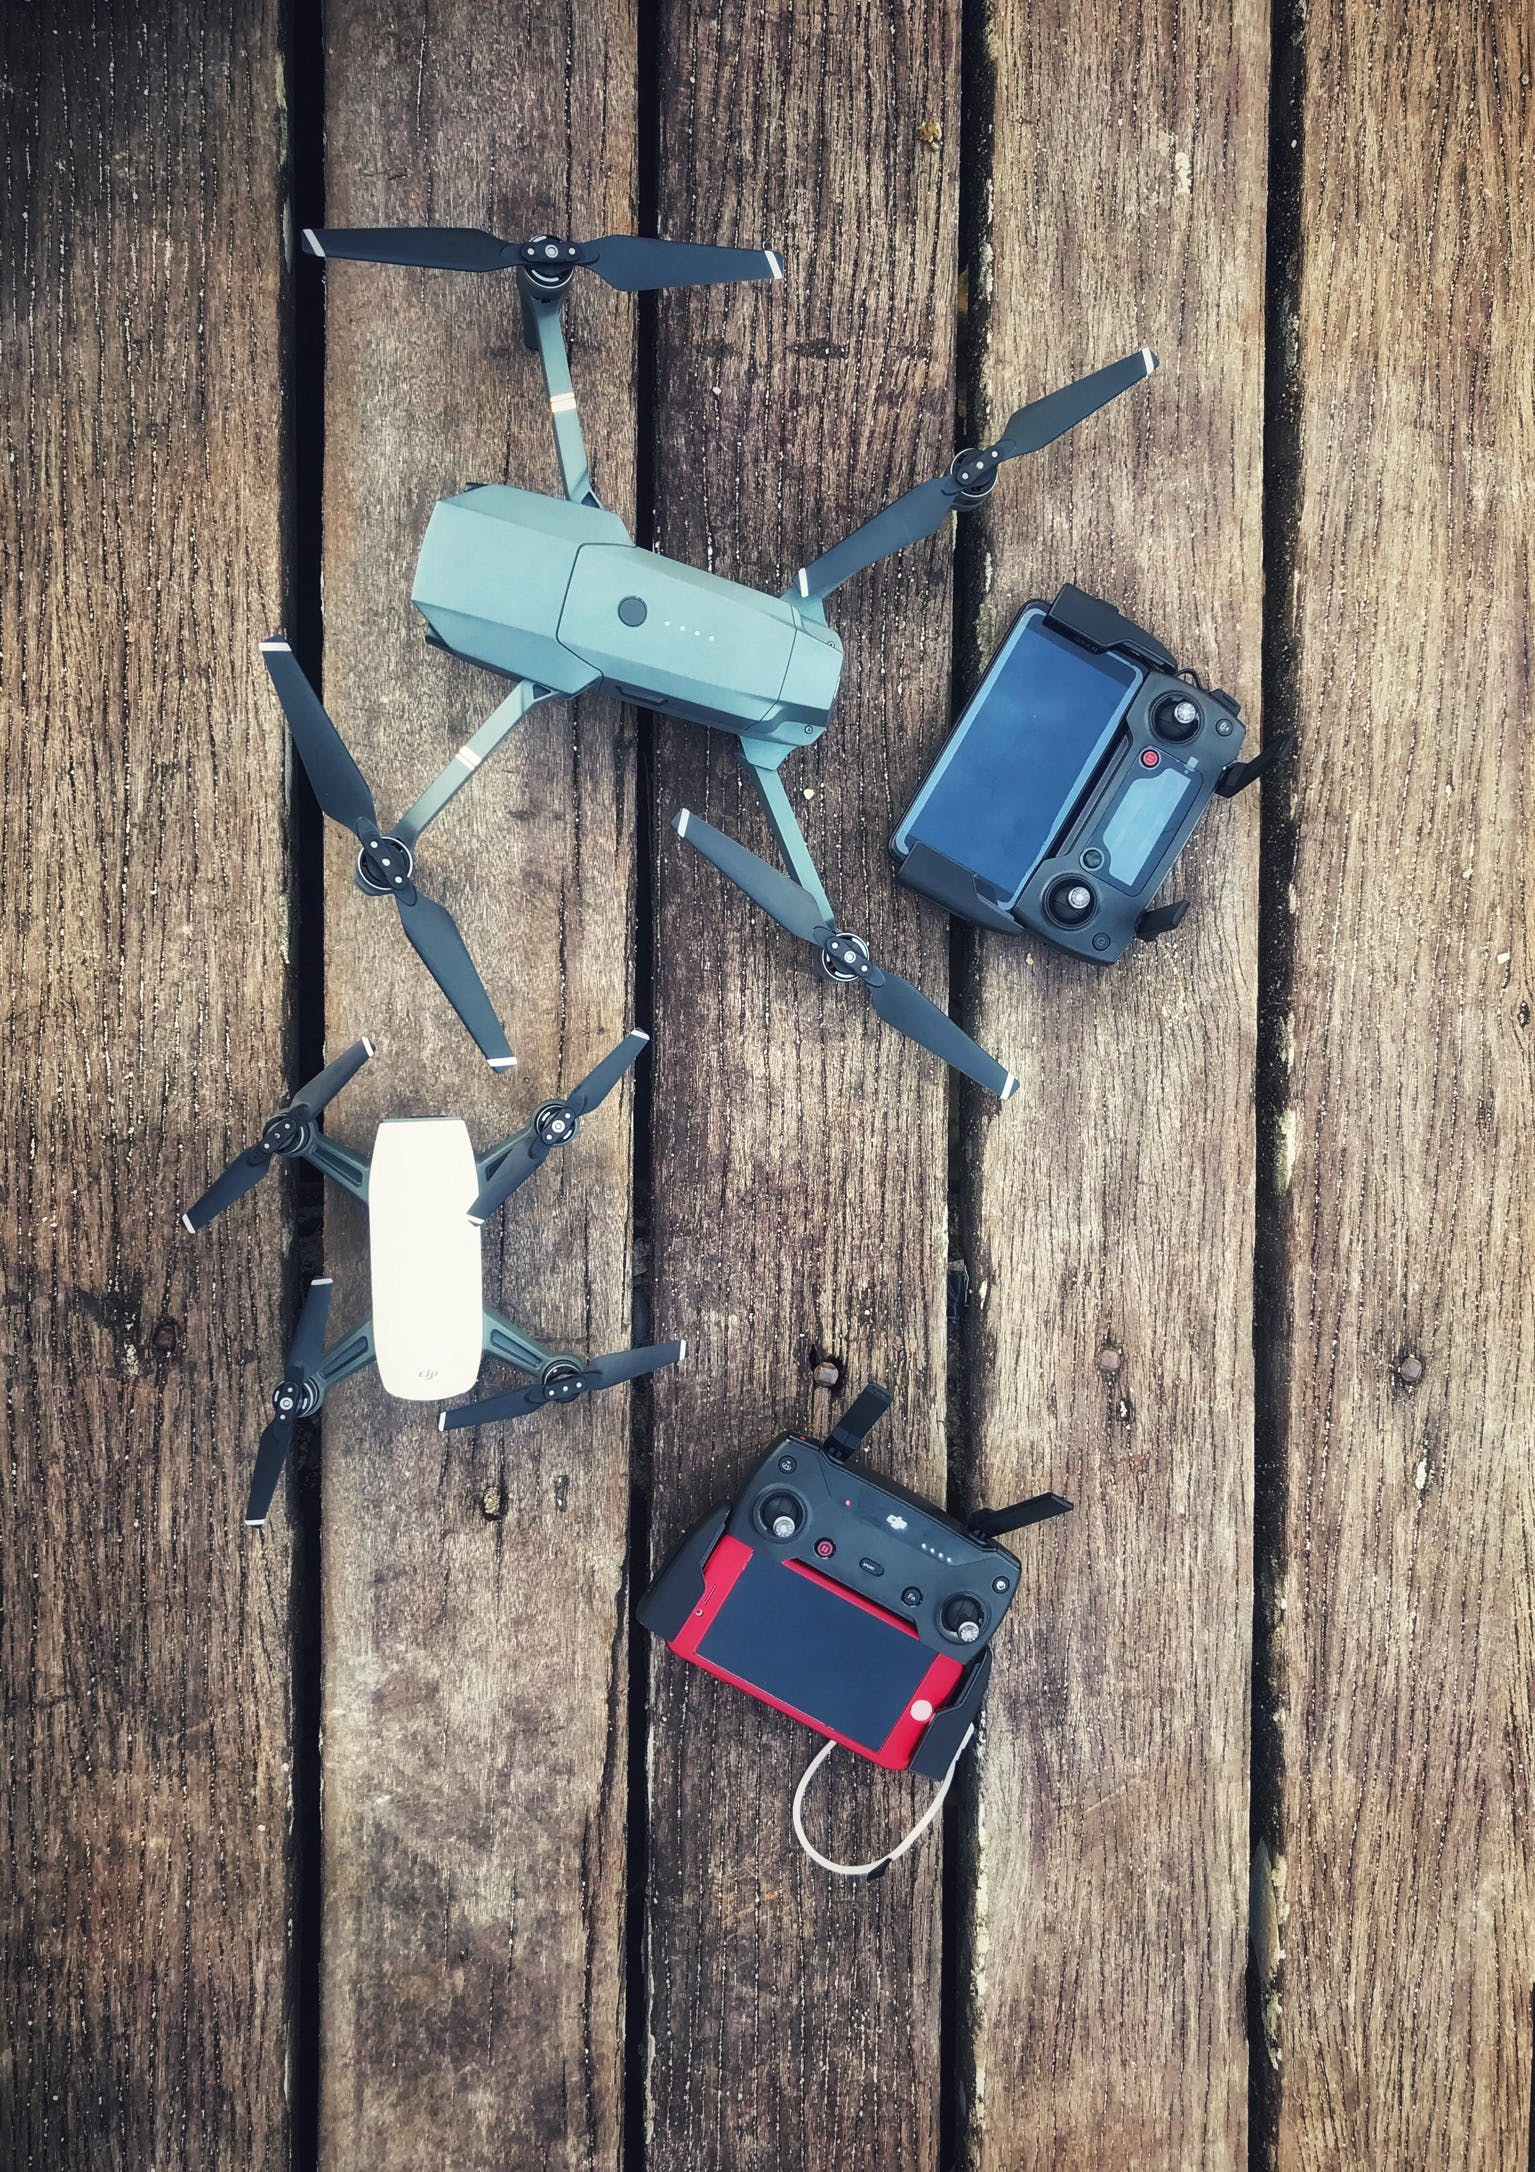 Two Assorted Quadcopter Drones With Controllers